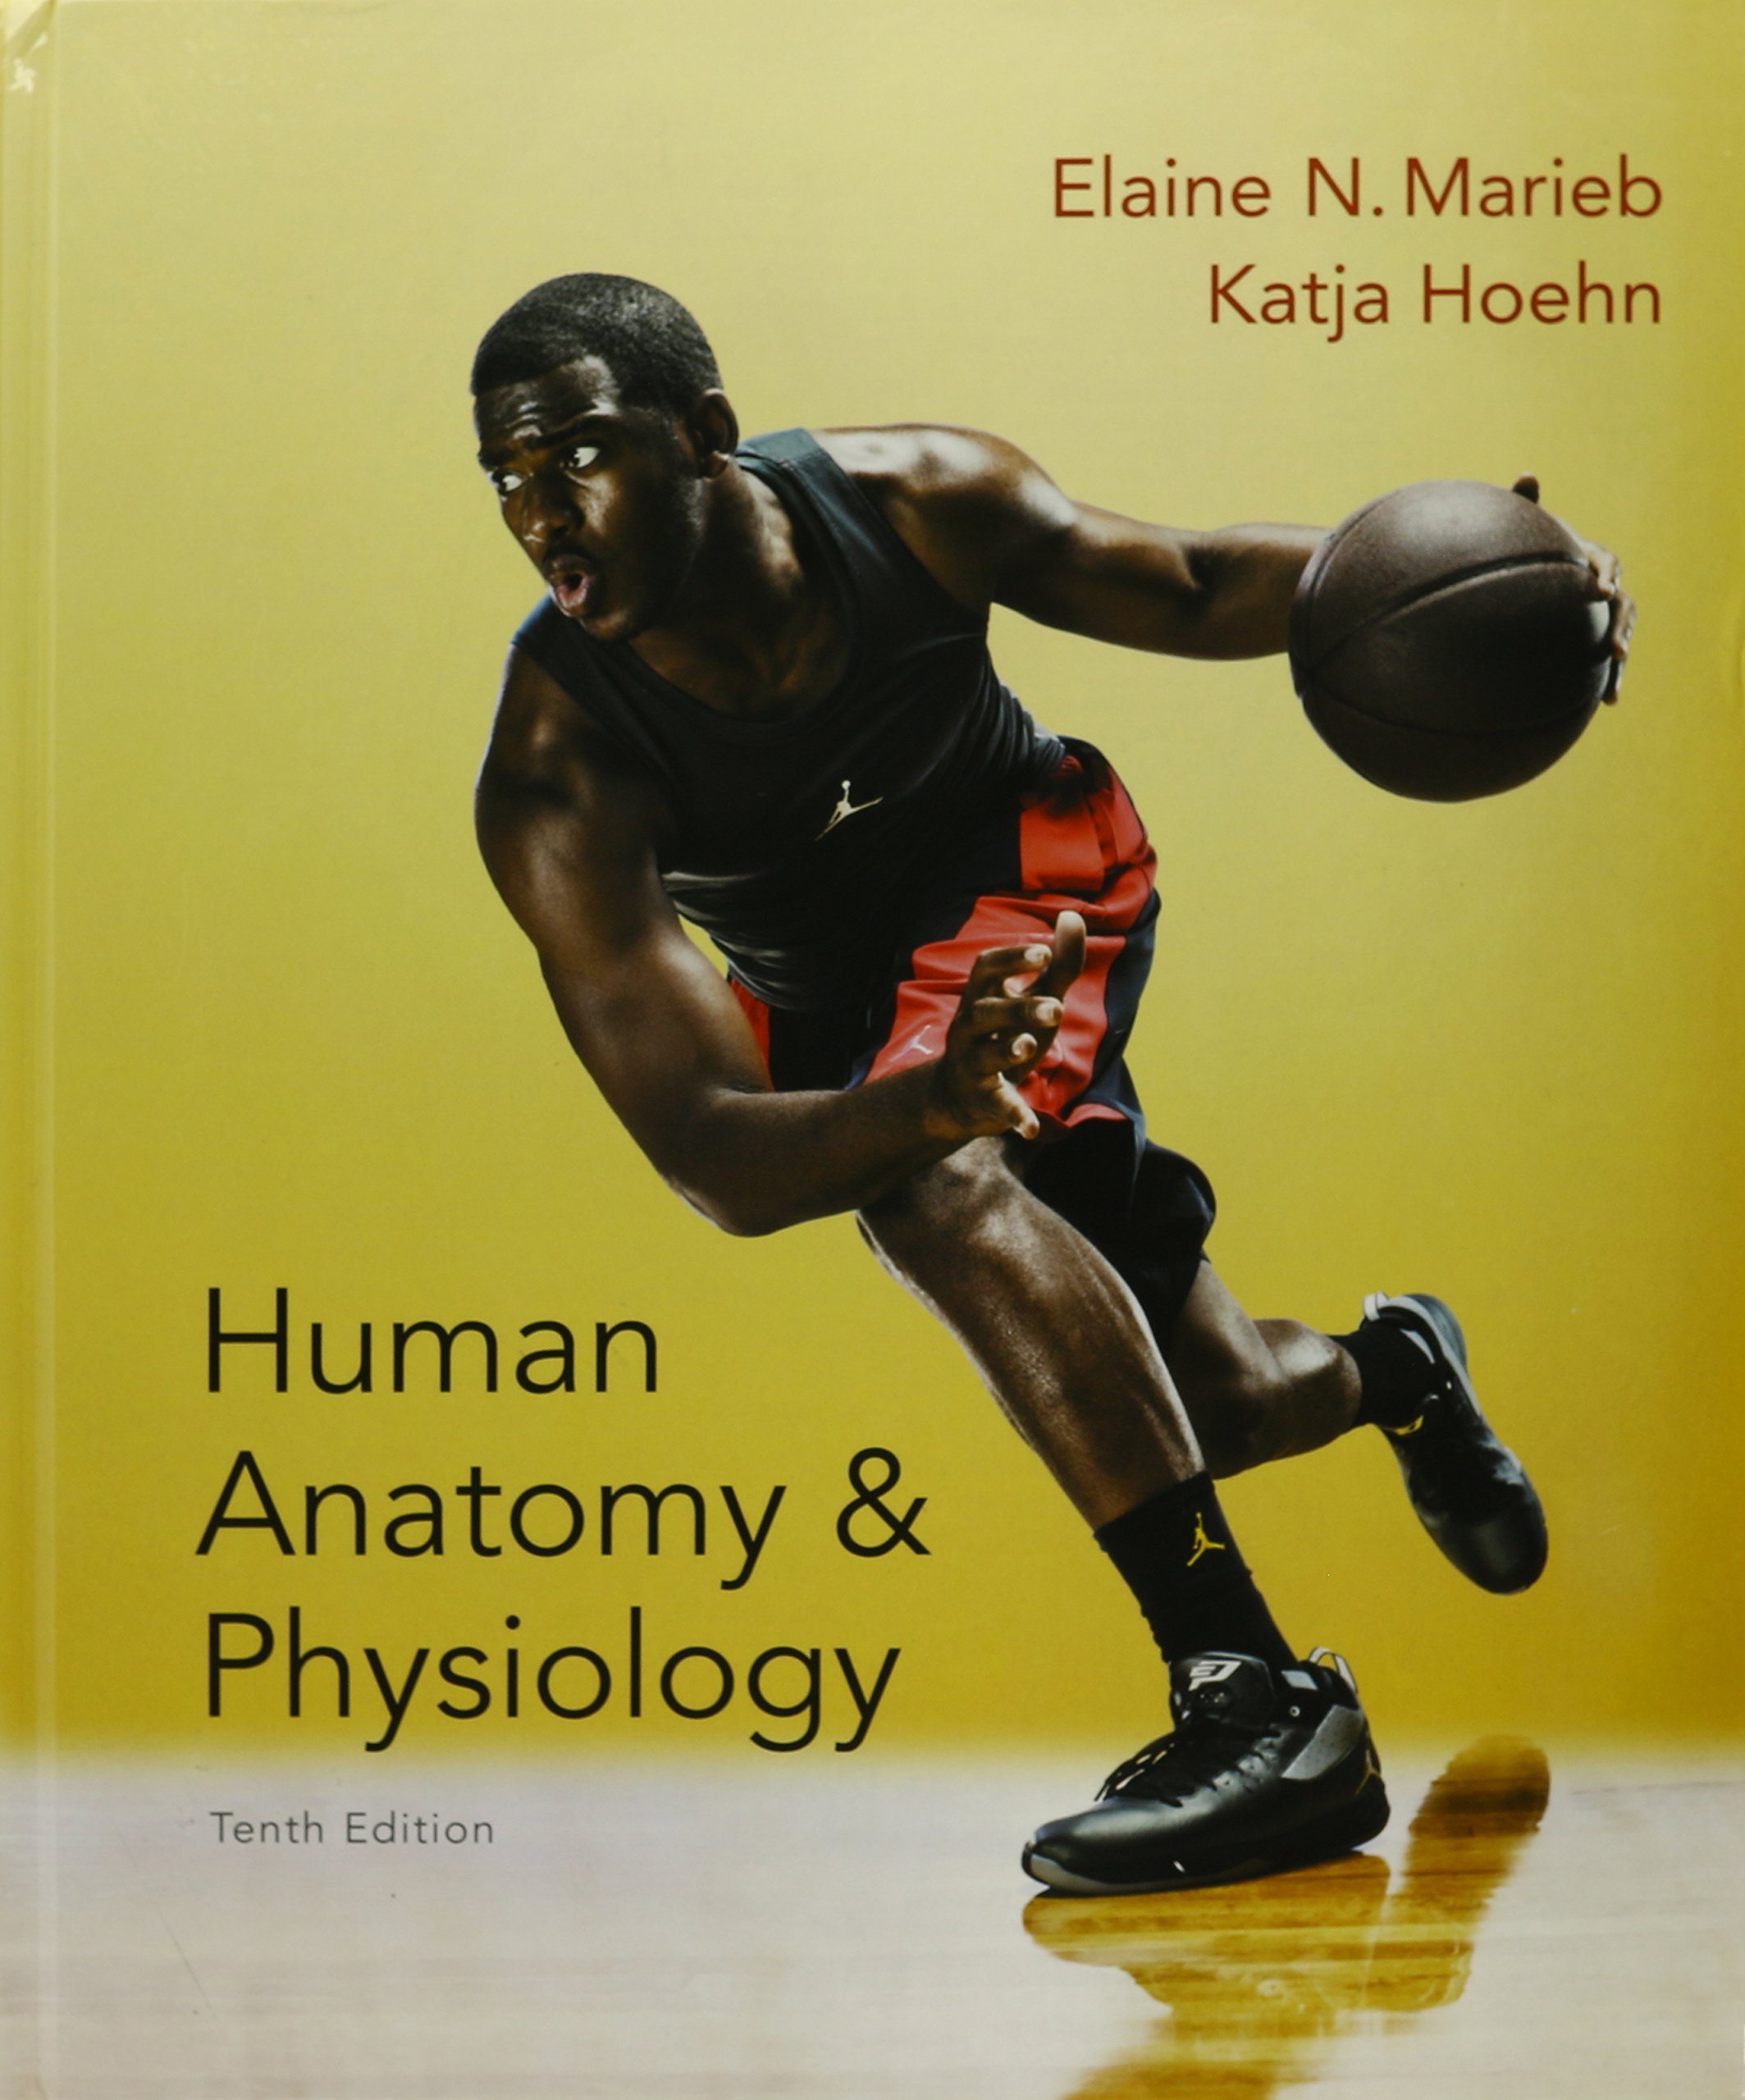 Human Anatomy & Physiology 10th Ed.+ Laboratory Manual 12th Ed ...